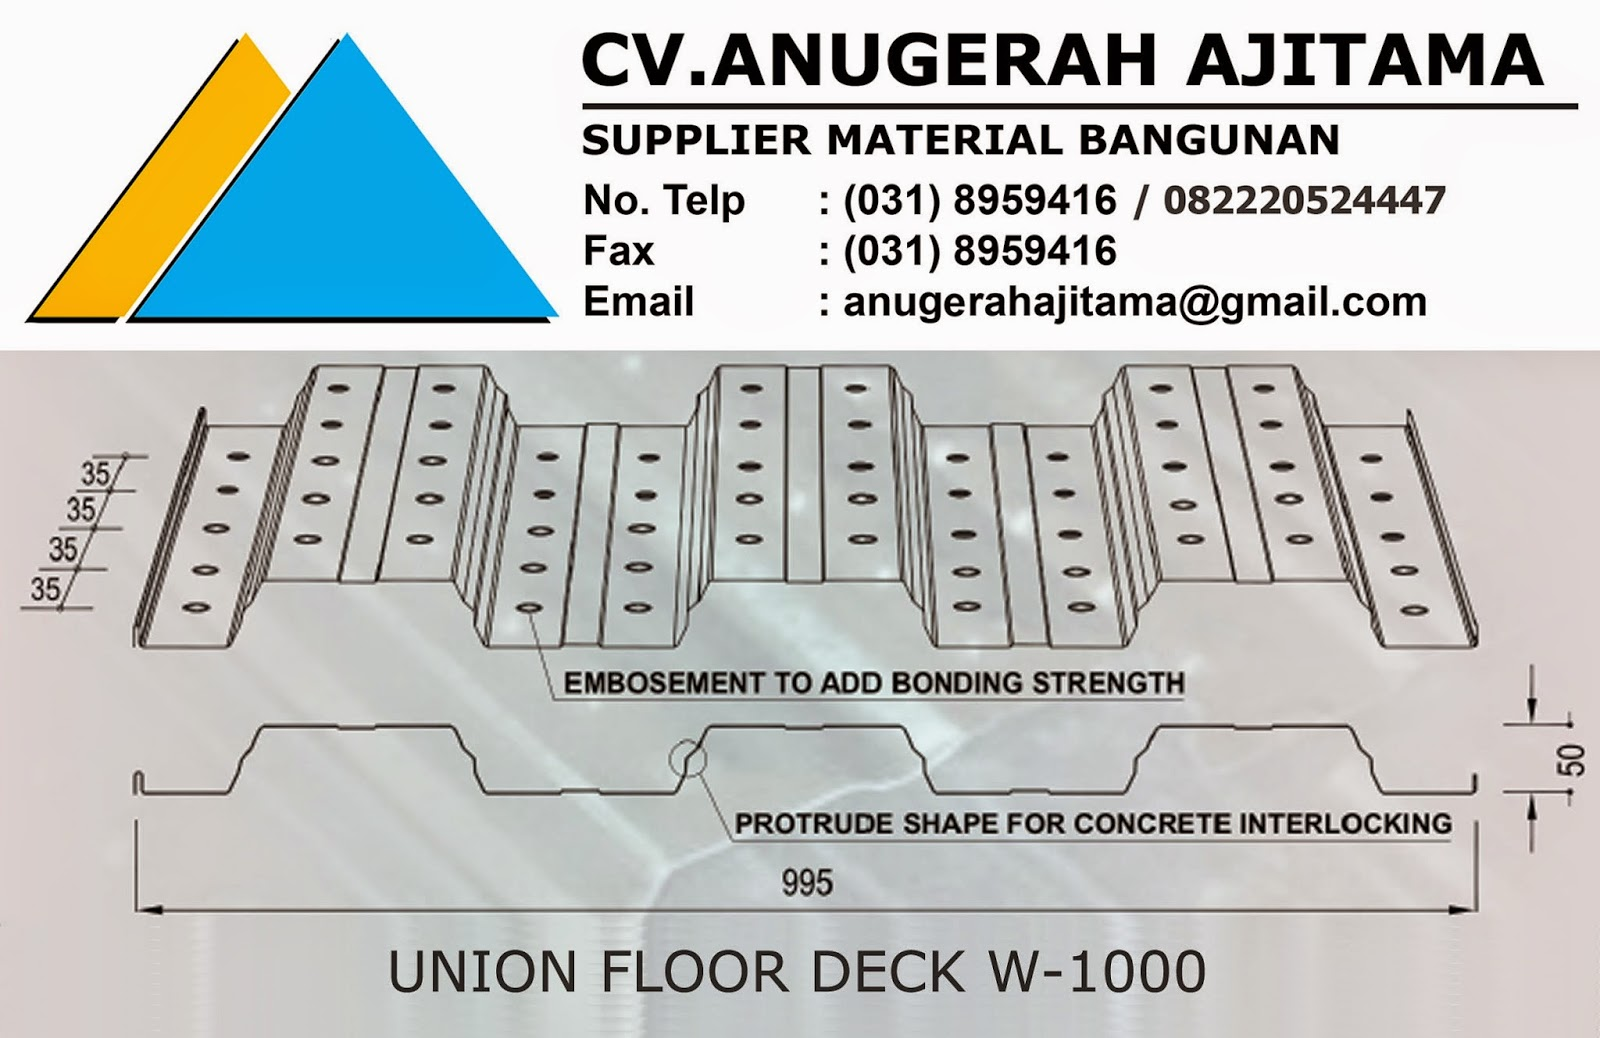 PROFIL UNION FLOOR DECK W-1000